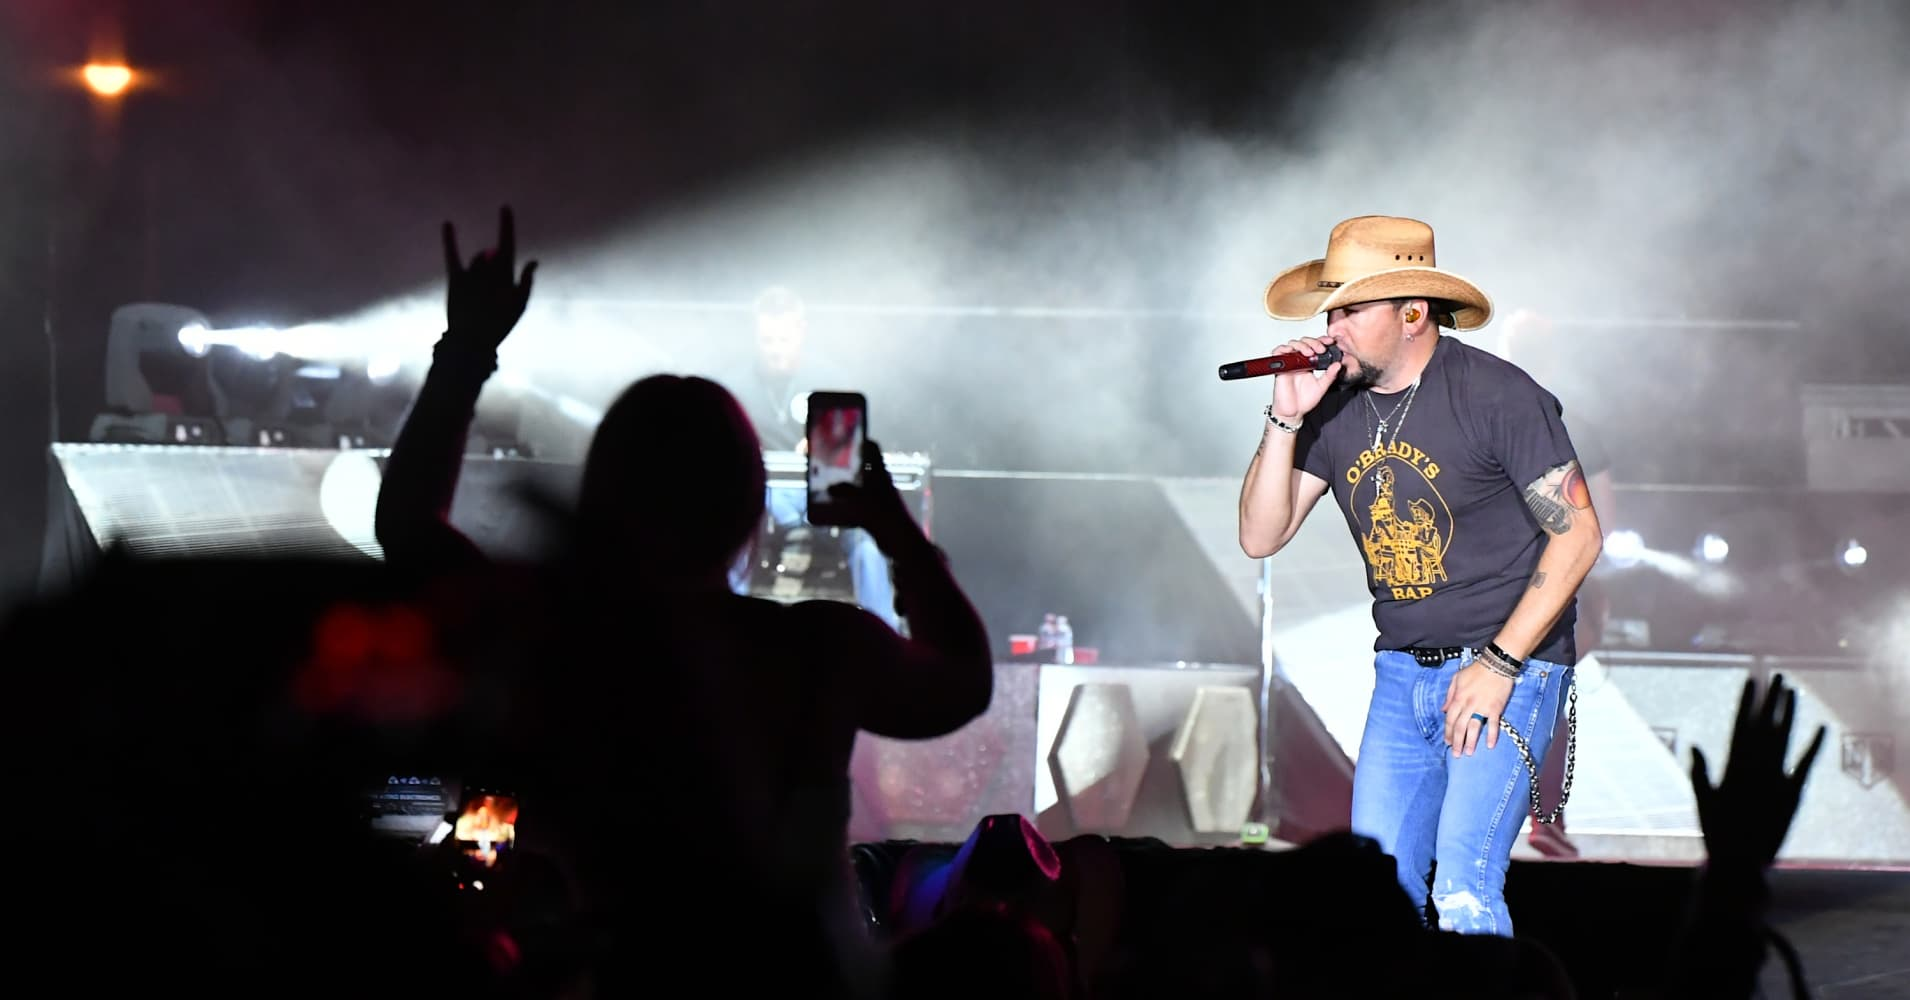 Recording artist Jason Aldean performs during the Route 91 Harvest country music festival at the Las Vegas Village on October 1, 2017 in Las Vegas, Nevada.